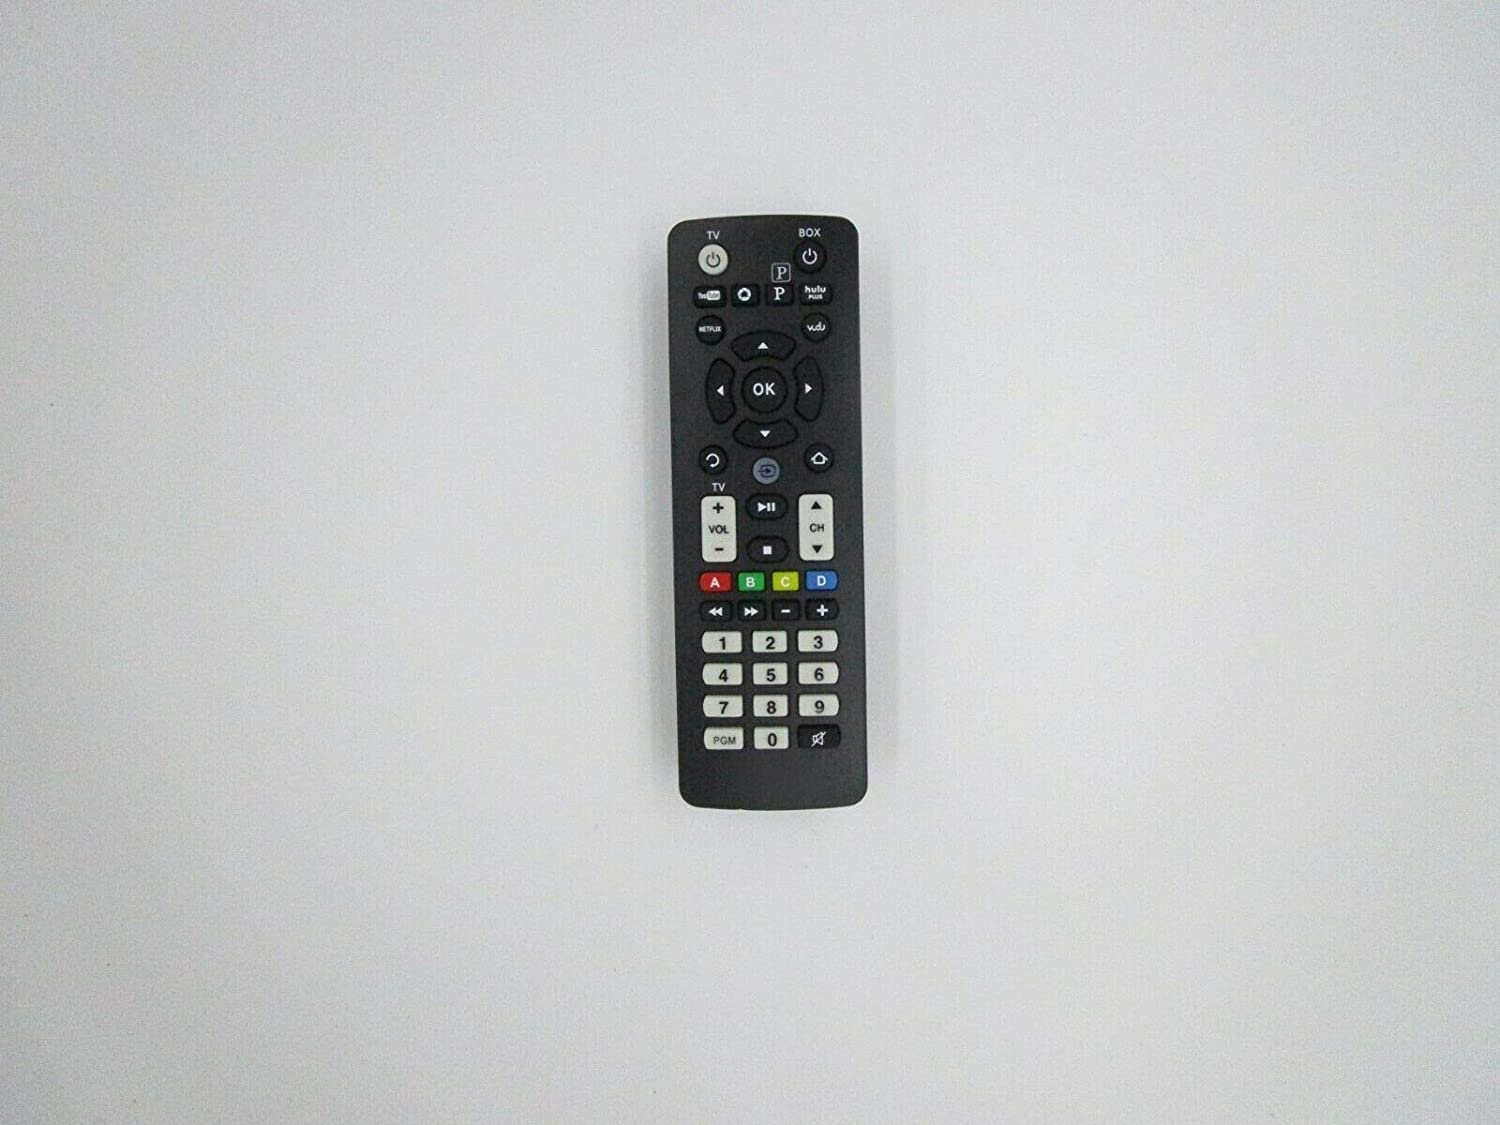 Replacement Remote Control for RCA DSB876WU-BK Wi-Fi Streaming Media Player HDTV TV - (Compatible Model:DSB876WU-WH)